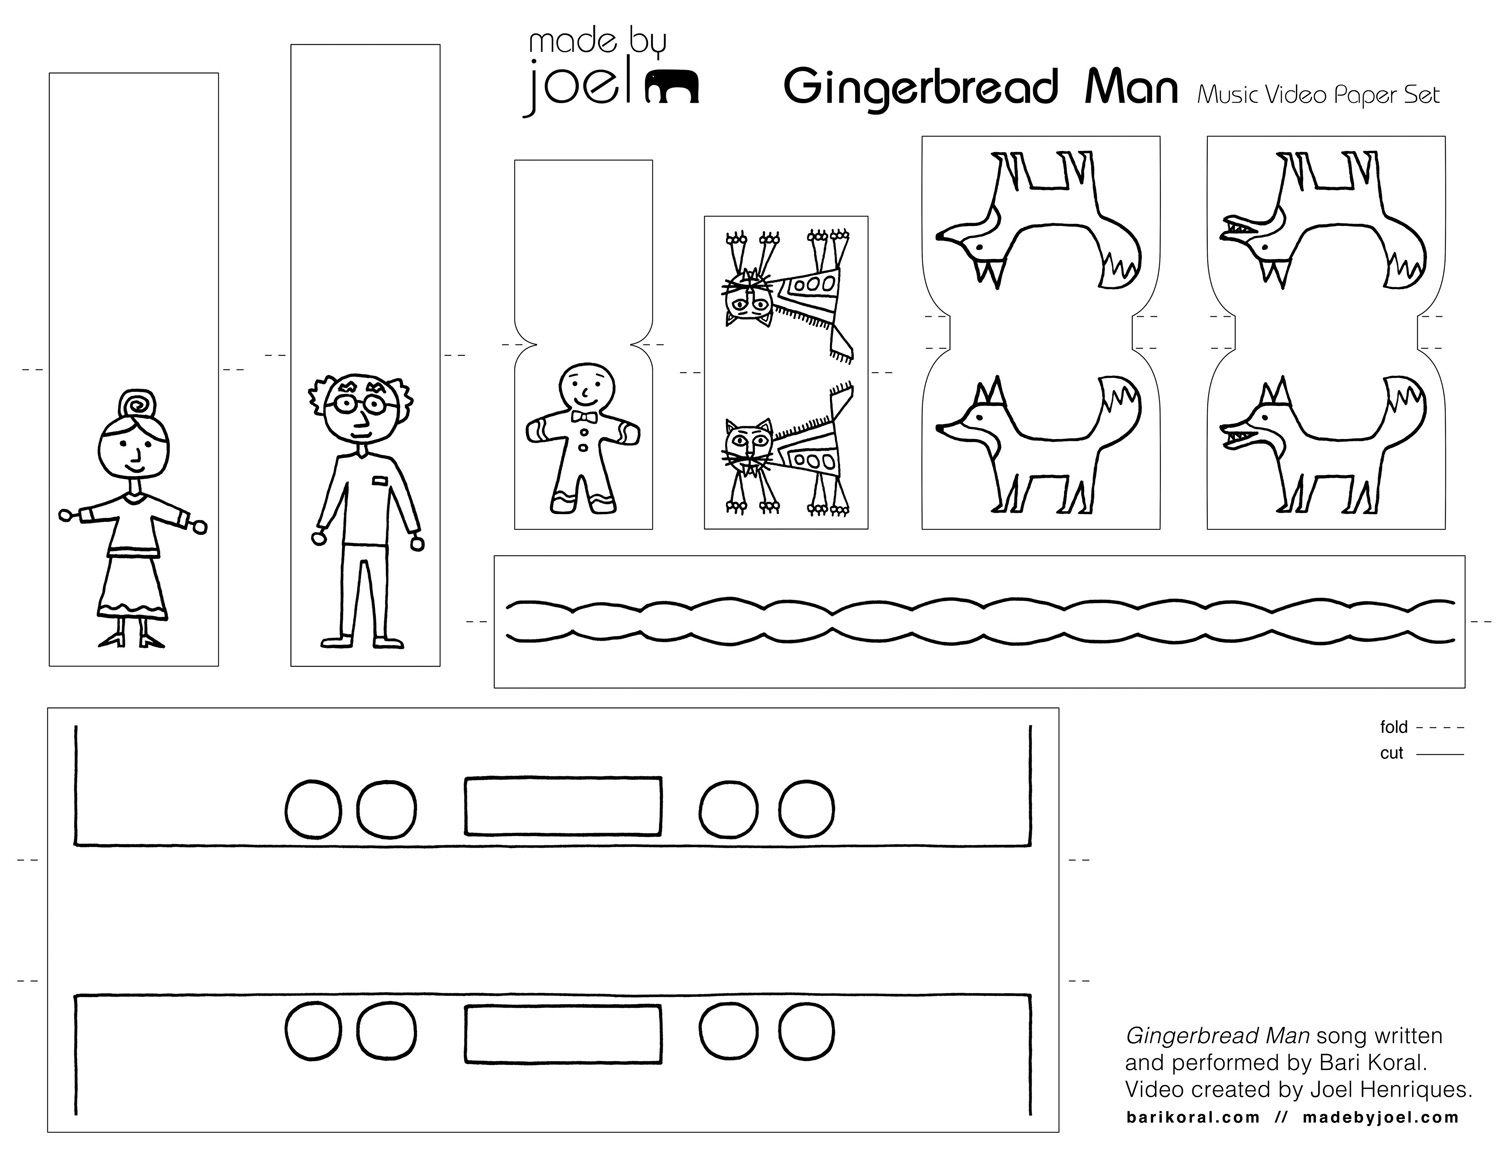 Gingerbread Music Video And Printable Paper Toy Made By Joel